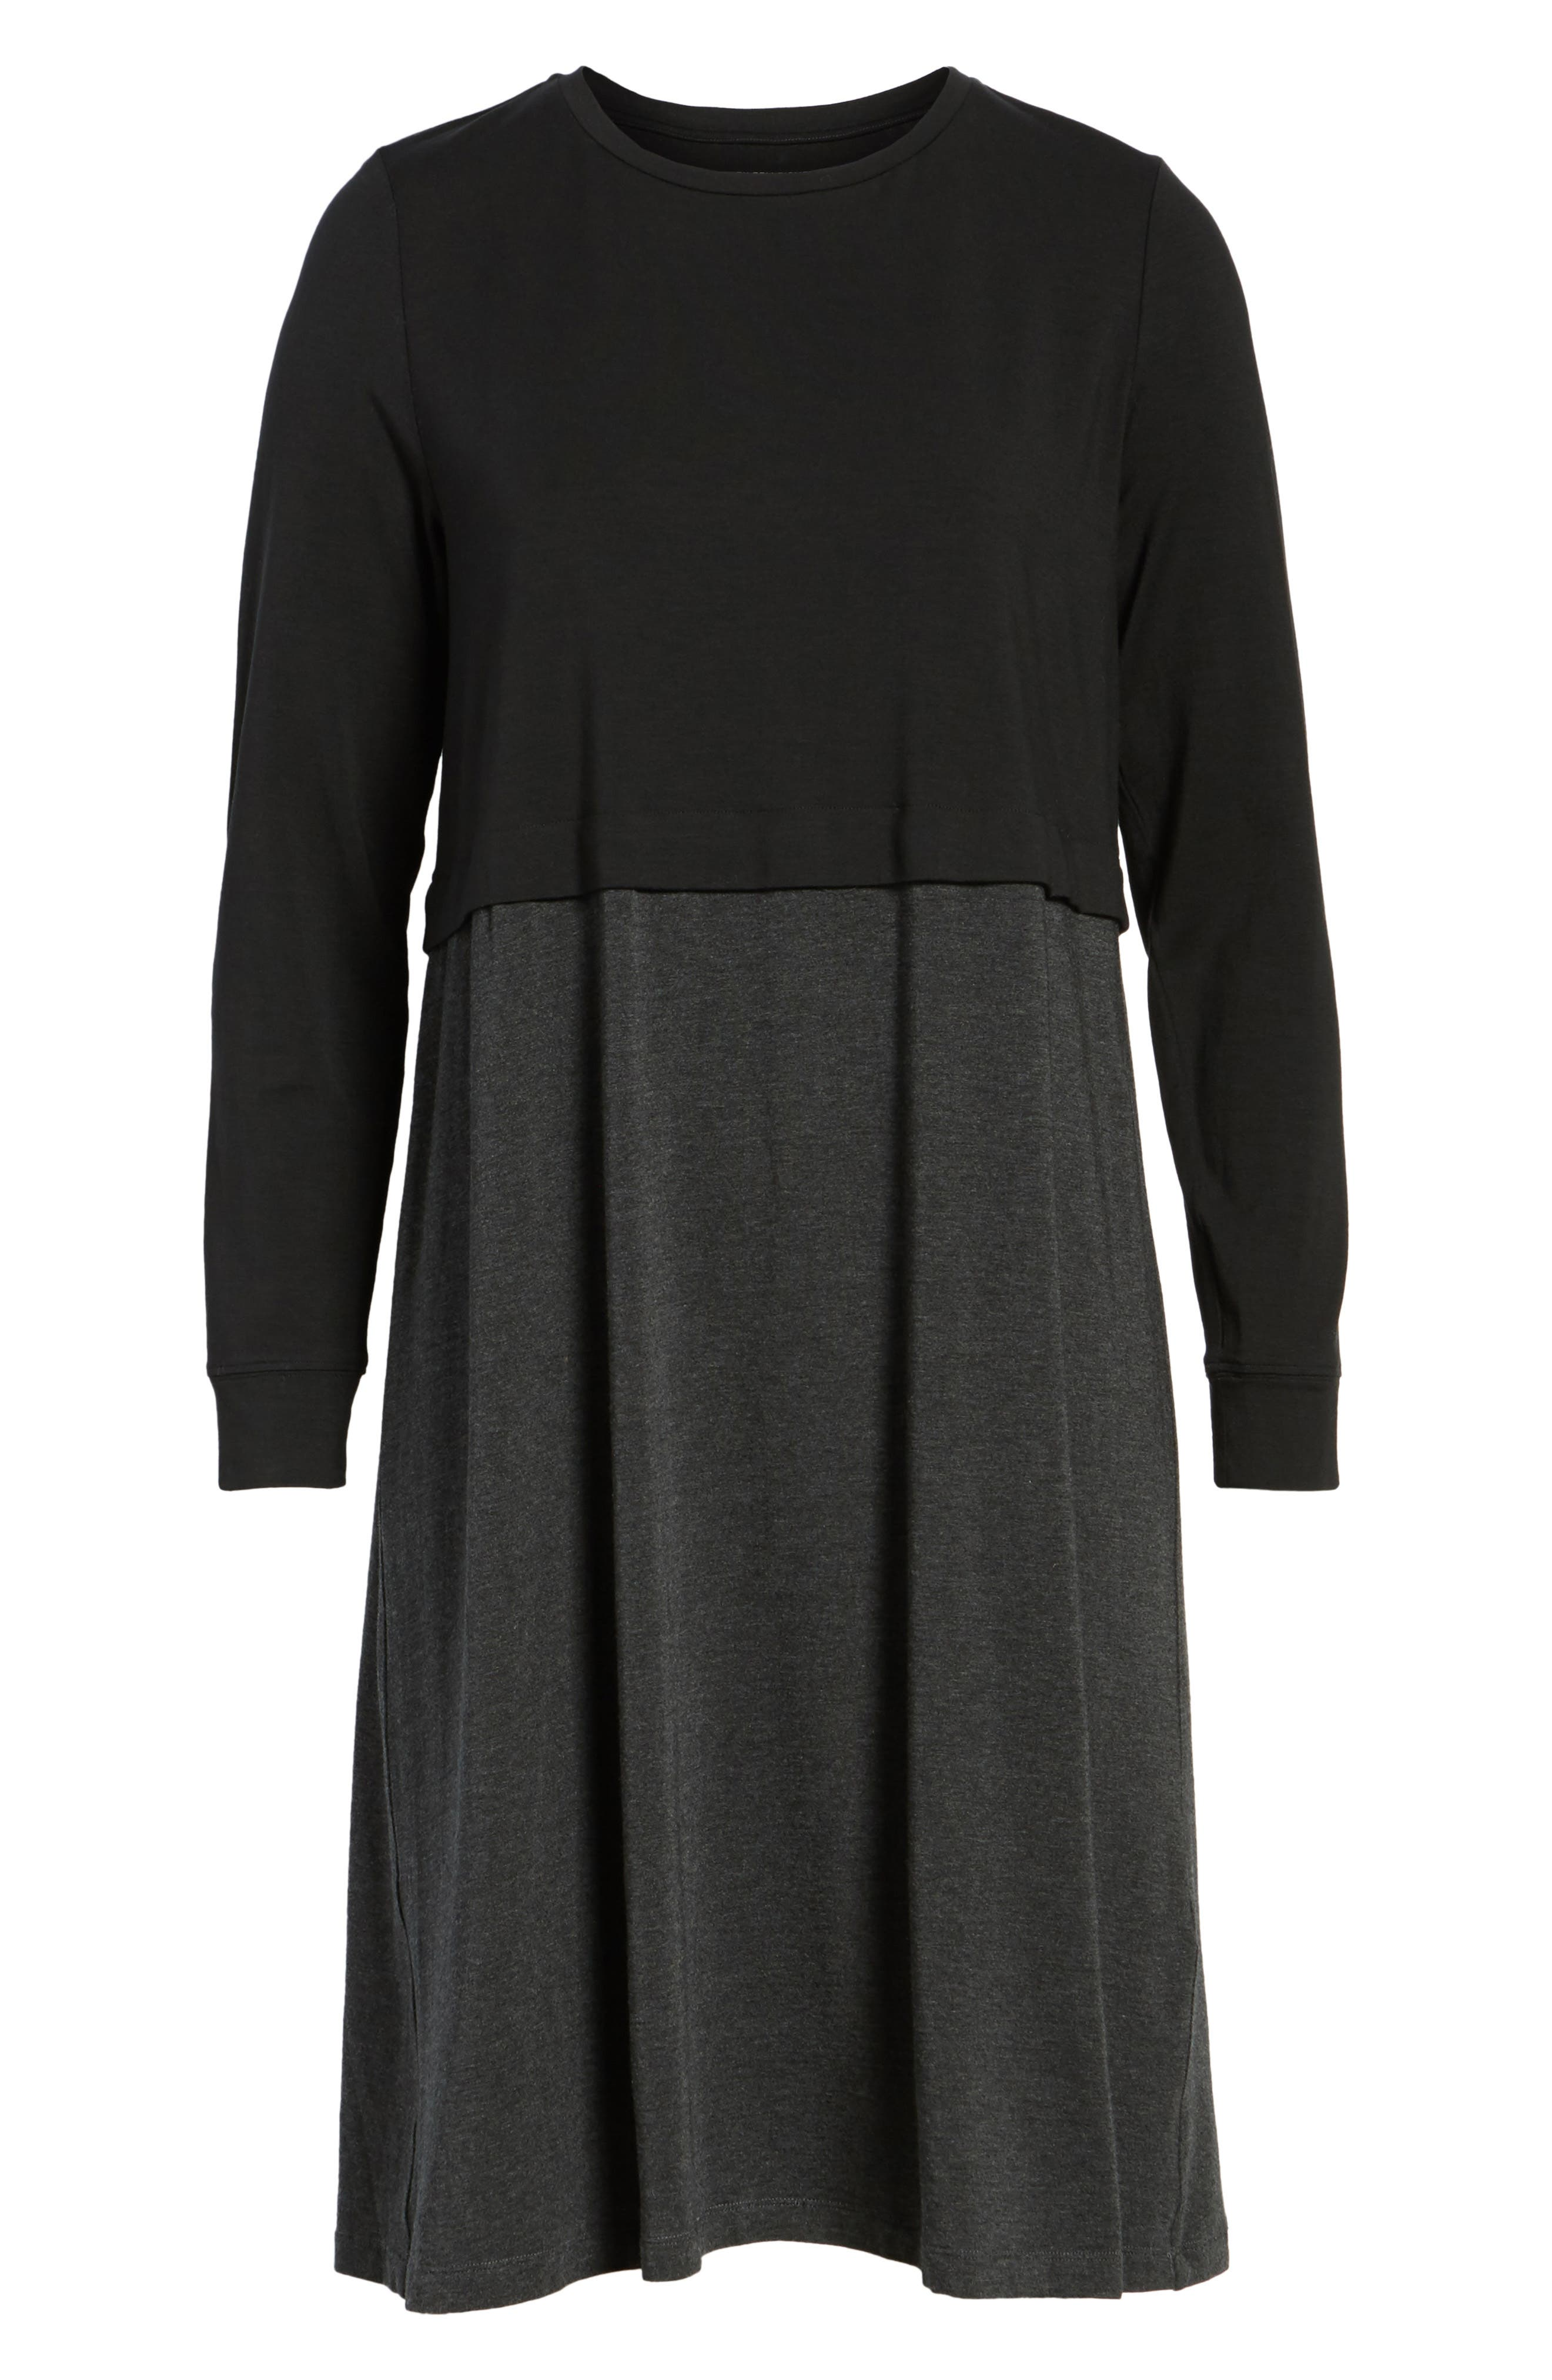 EILEEN FISHER,                             Stretch Tencel<sup>®</sup> A-Line Dress,                             Alternate thumbnail 7, color,                             010